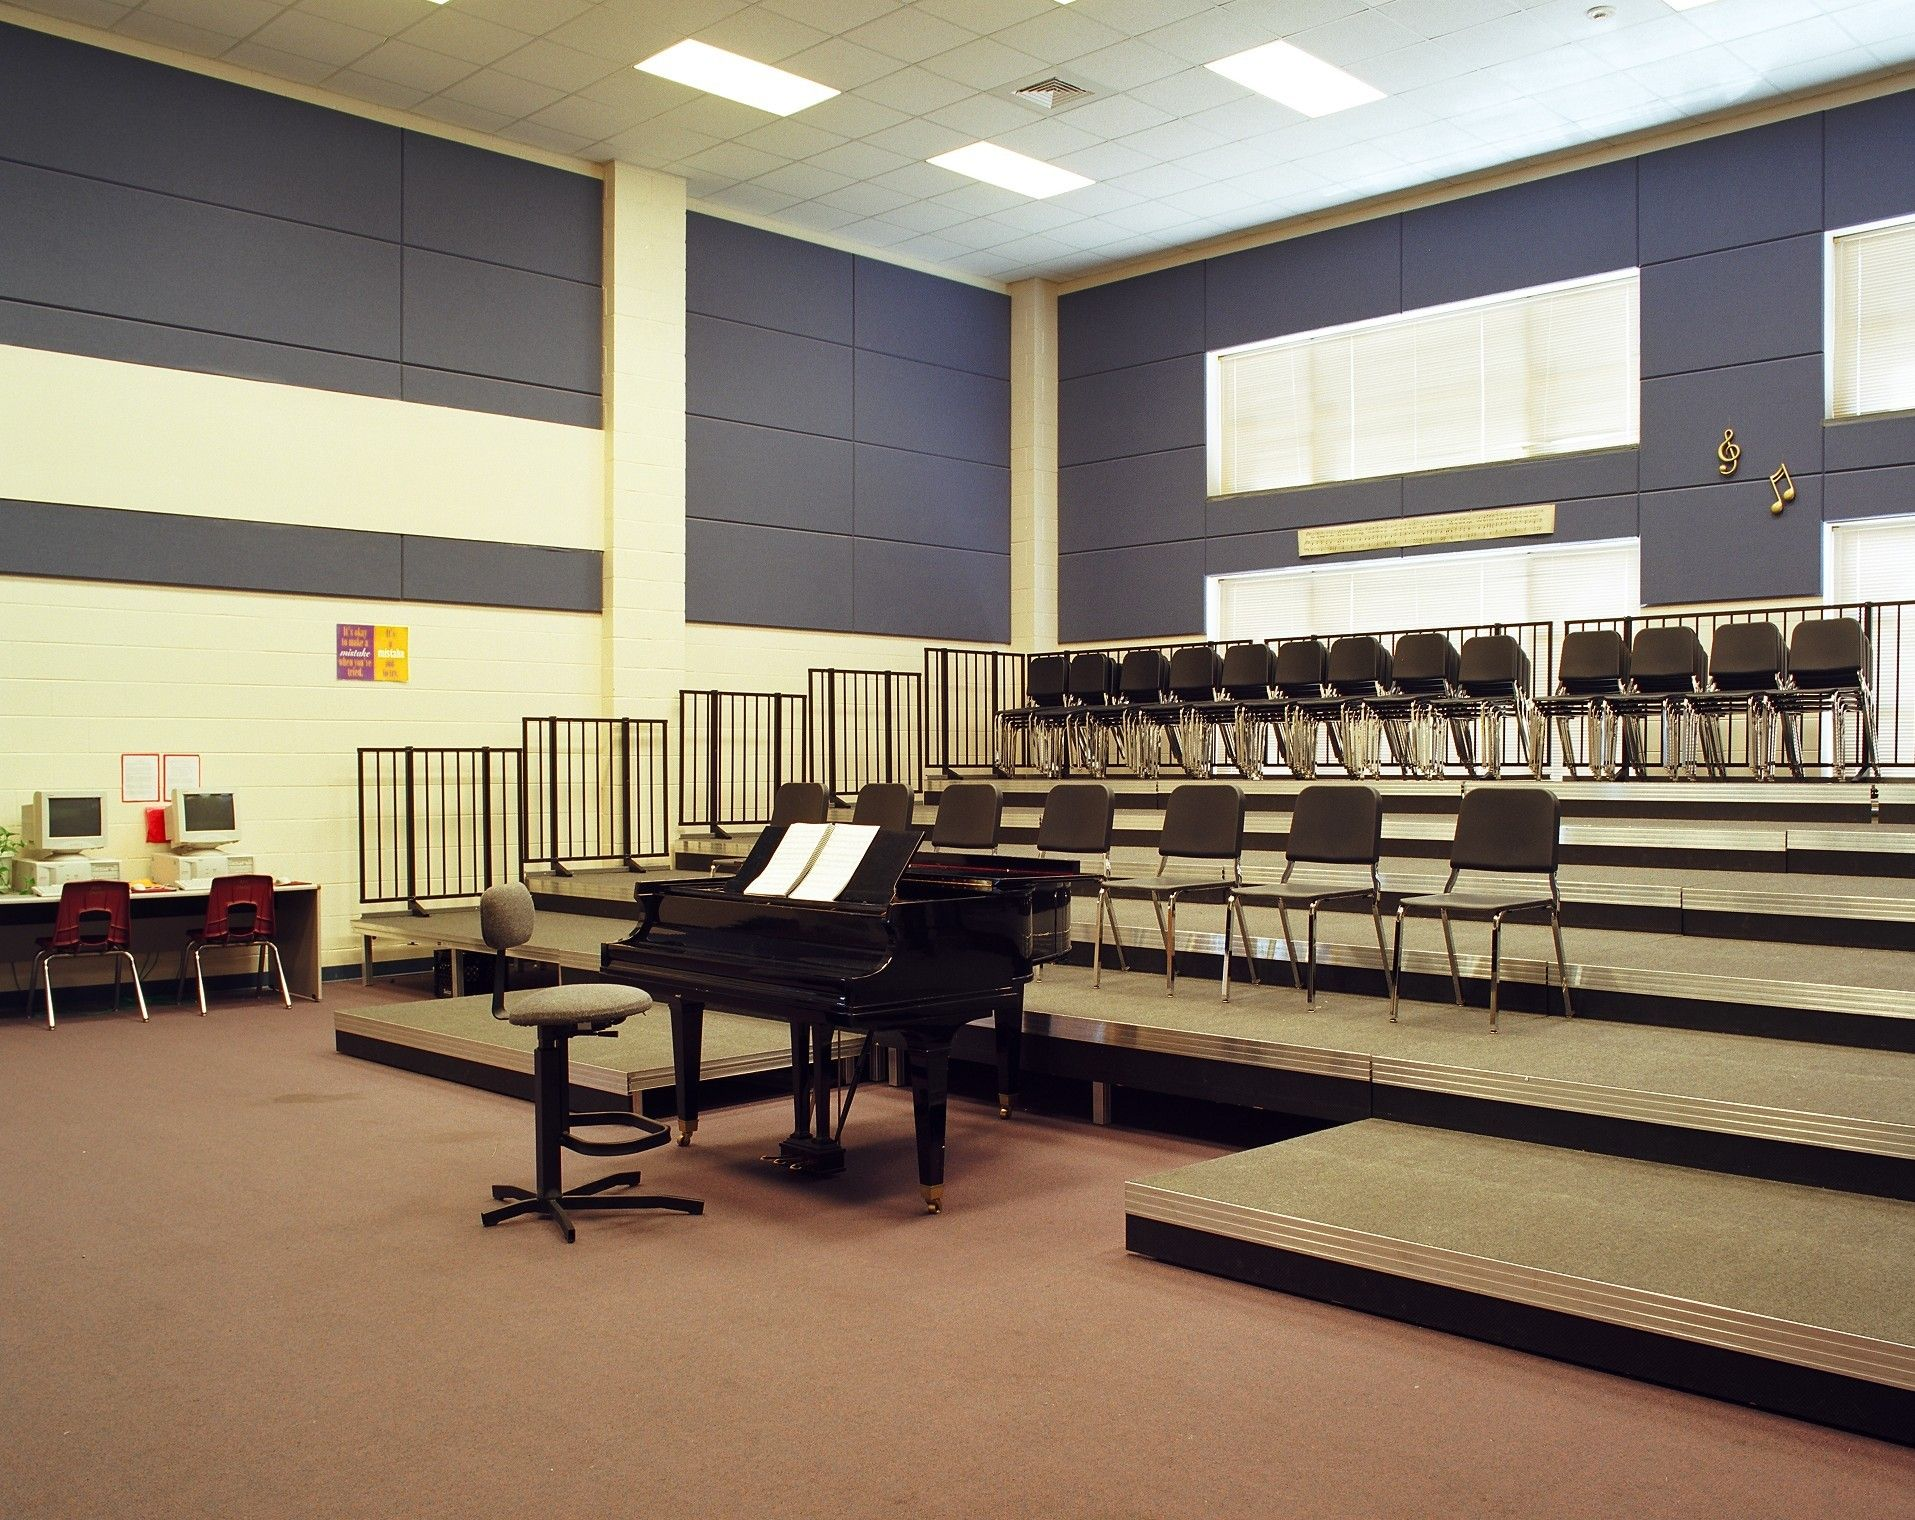 Music Classroom Decoration : The cut away in risers would be good if there was no